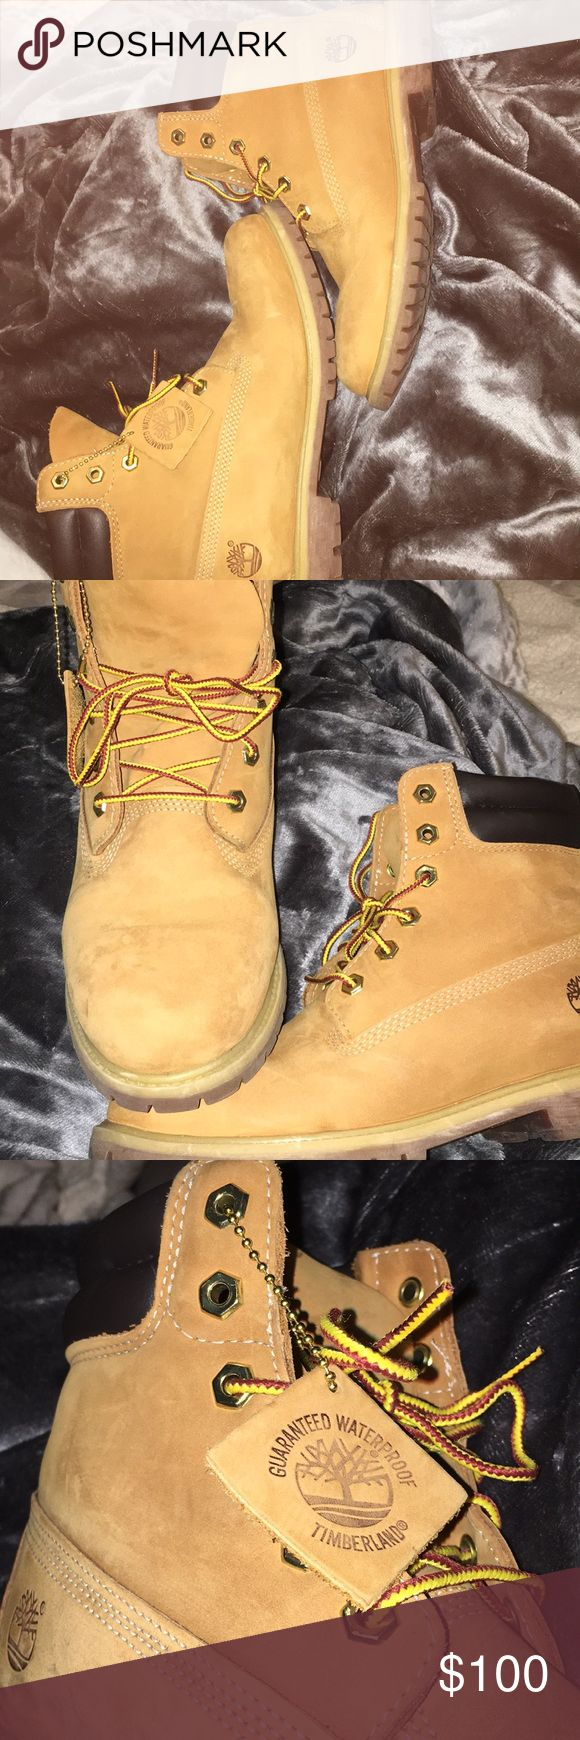 "original Timberland's very little wear, only worn up to five times. one little white scuff mark, but it's pictured. original ""wheat nubuck"" color. women's size!  Timberland Shoes Winter & Rain Boots"